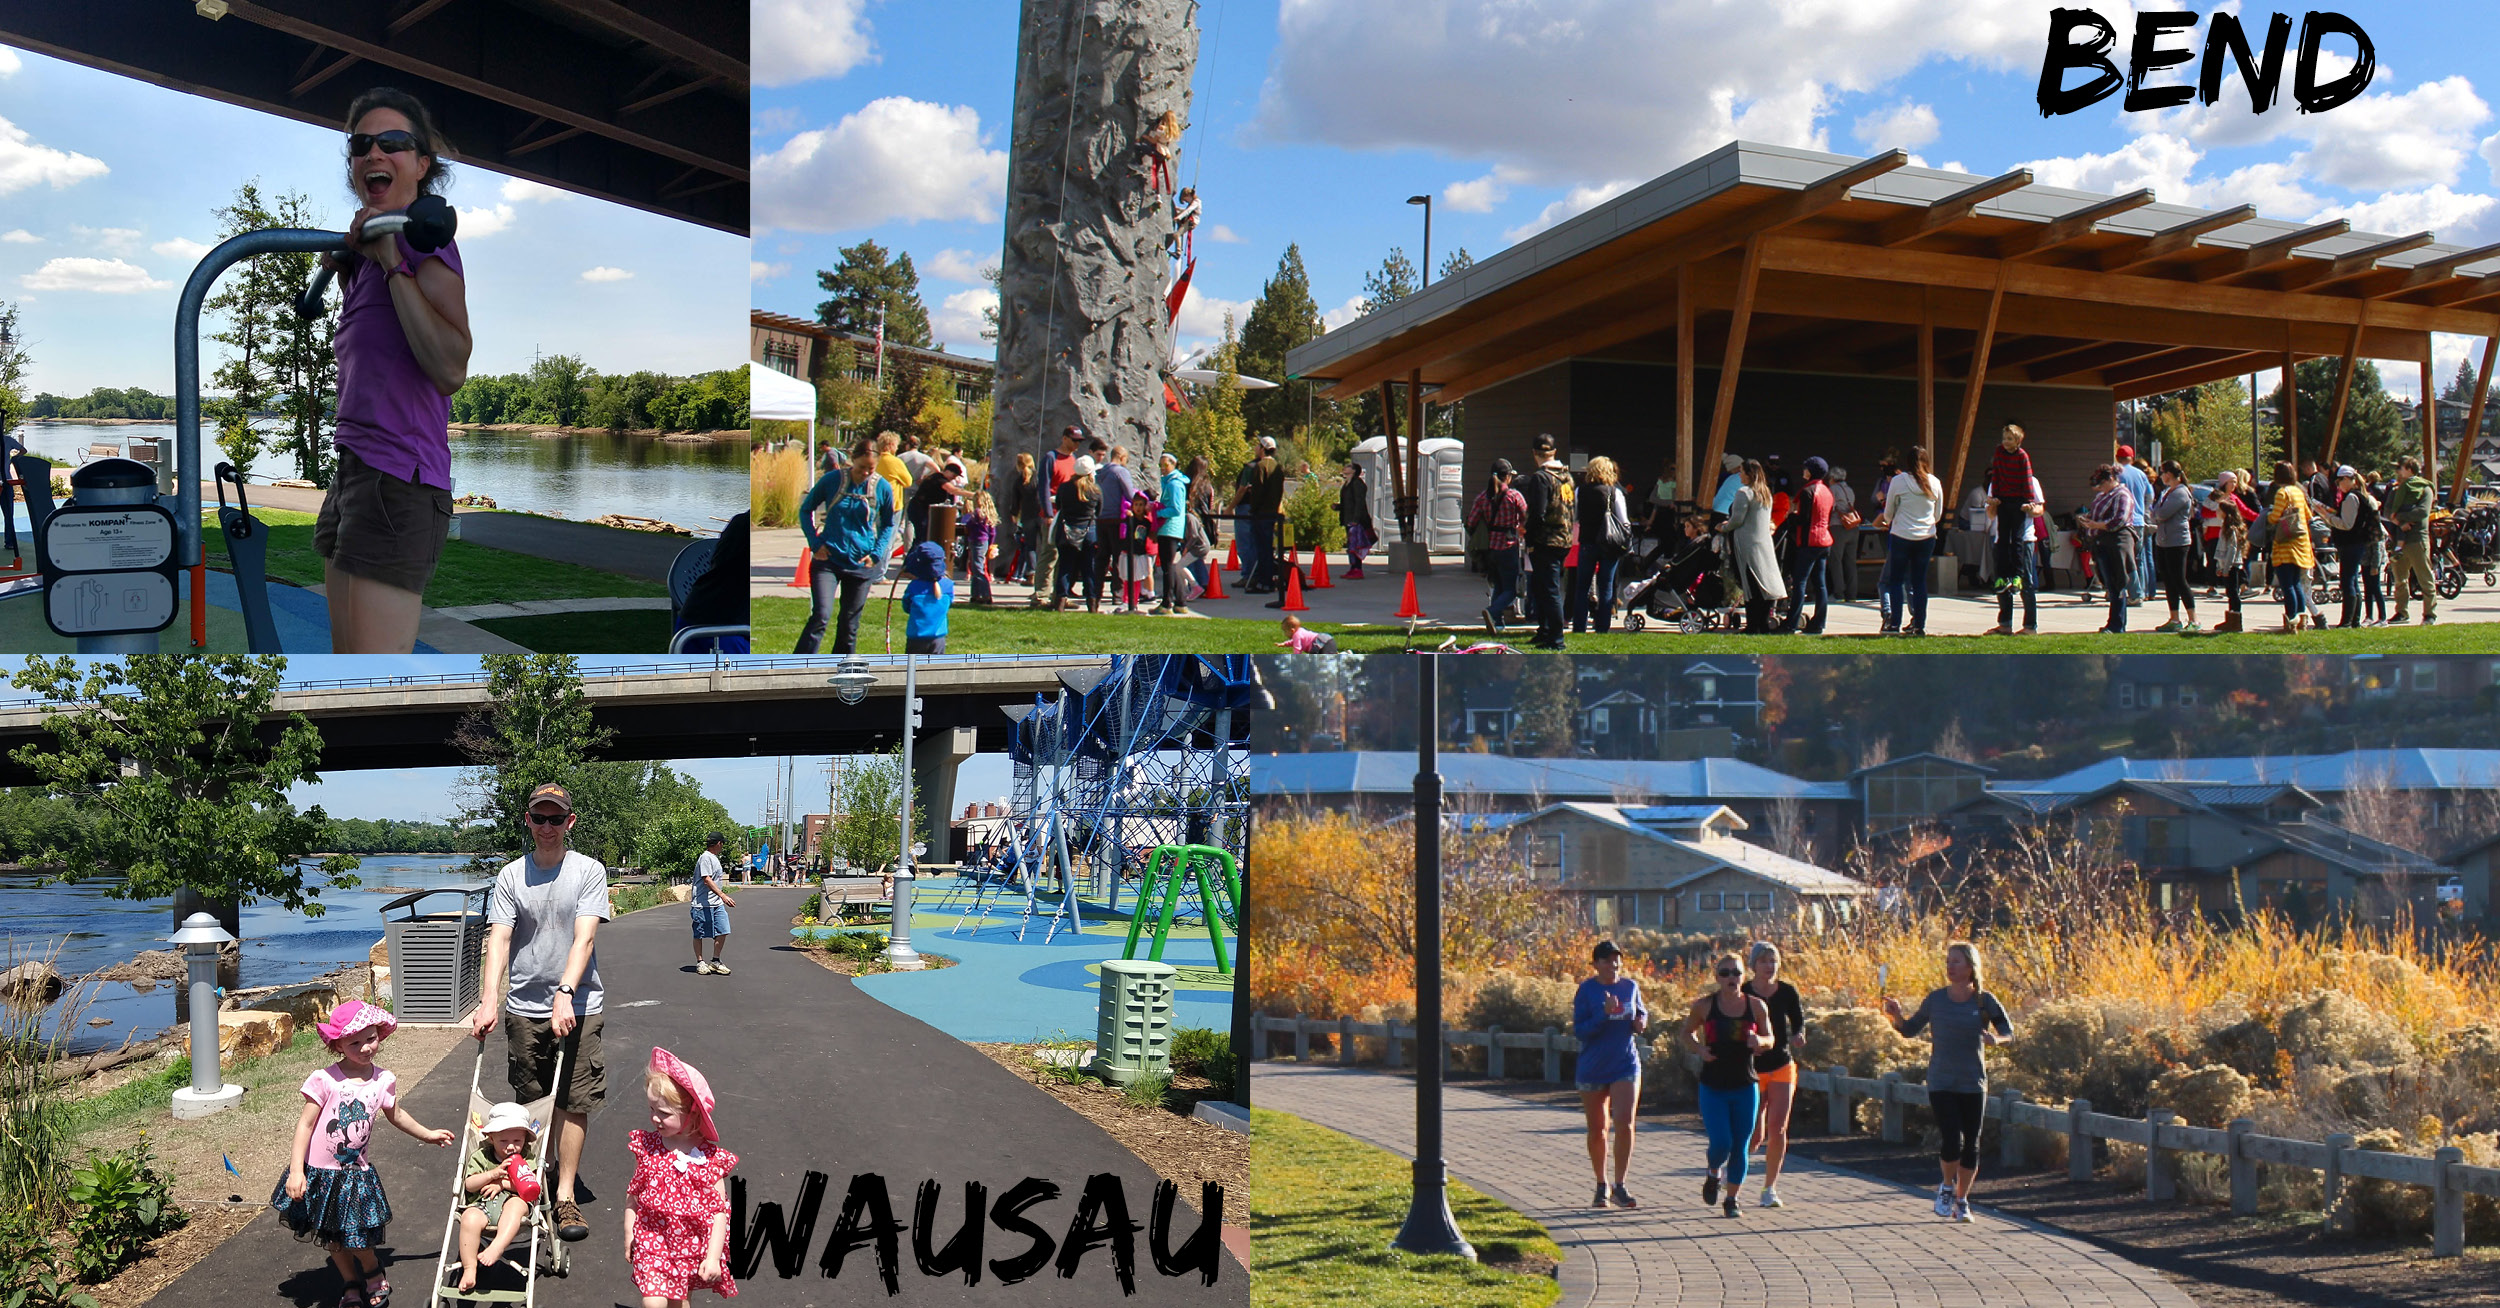 Photo comparison demonstrates the likeness of recreational outdoor activities in Bend, Oregon and Wausau, WI.